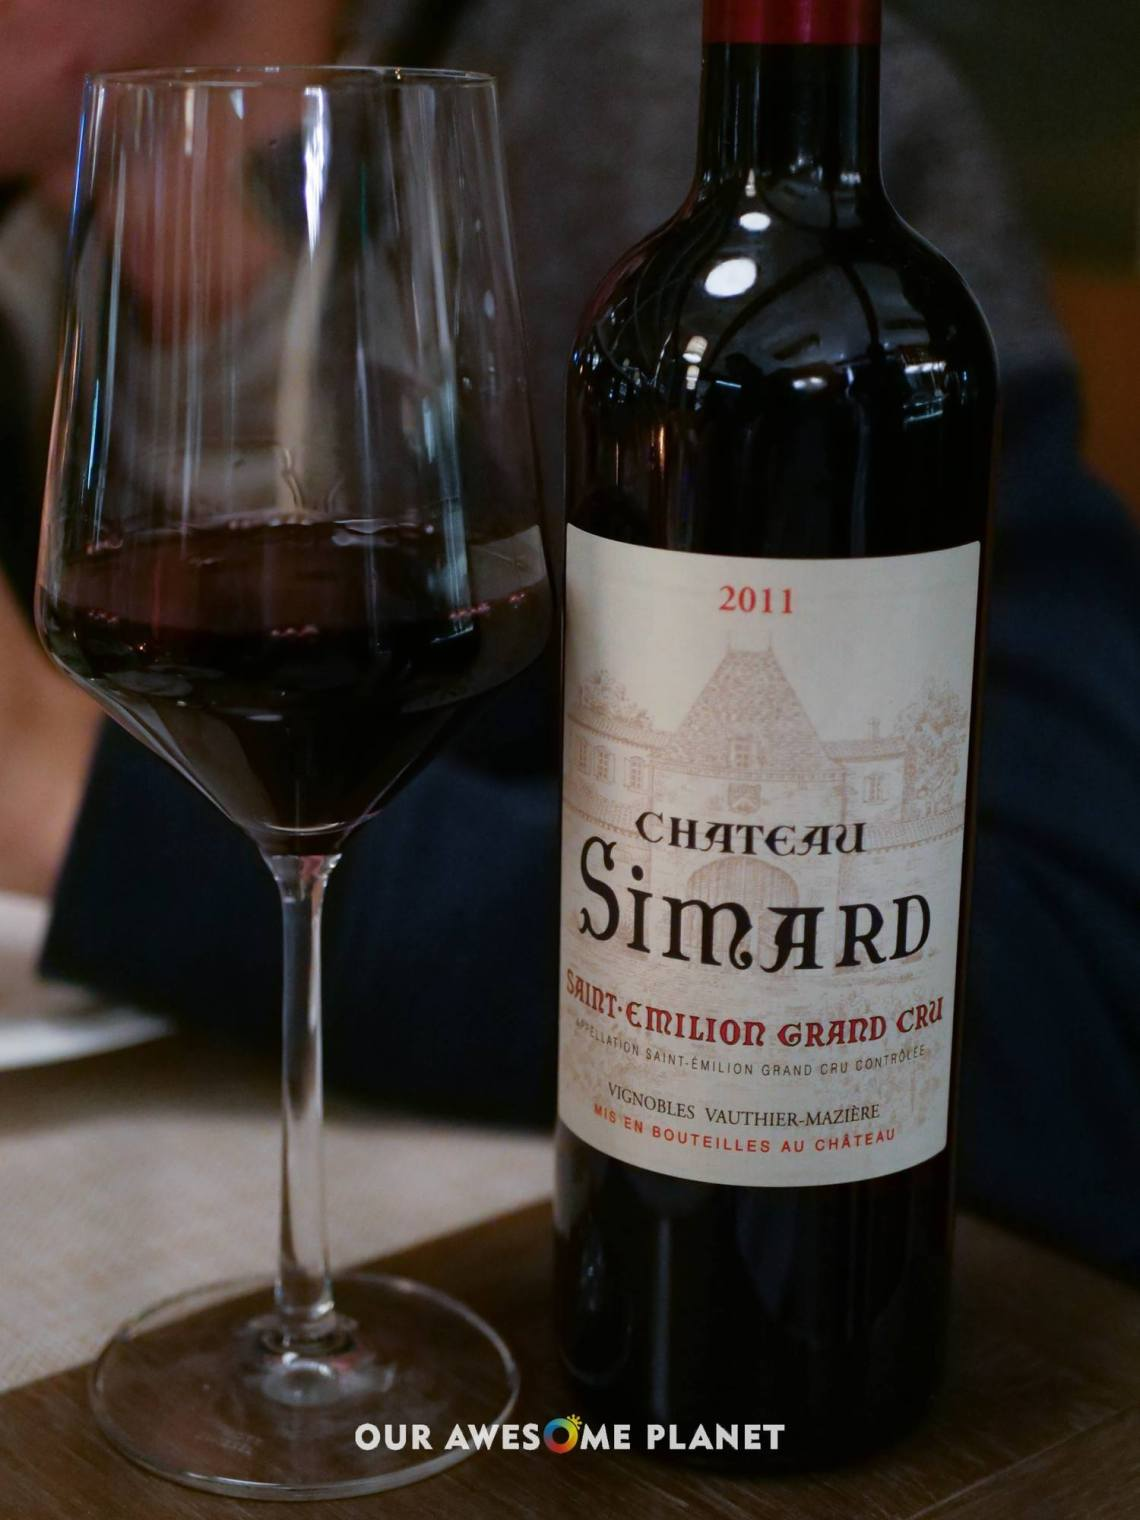 Chateau Simard Saint Emilion Grand Cru (Glass - ₱900, Half-Bottle - ₱1,700, Bottle - ₱4,000)